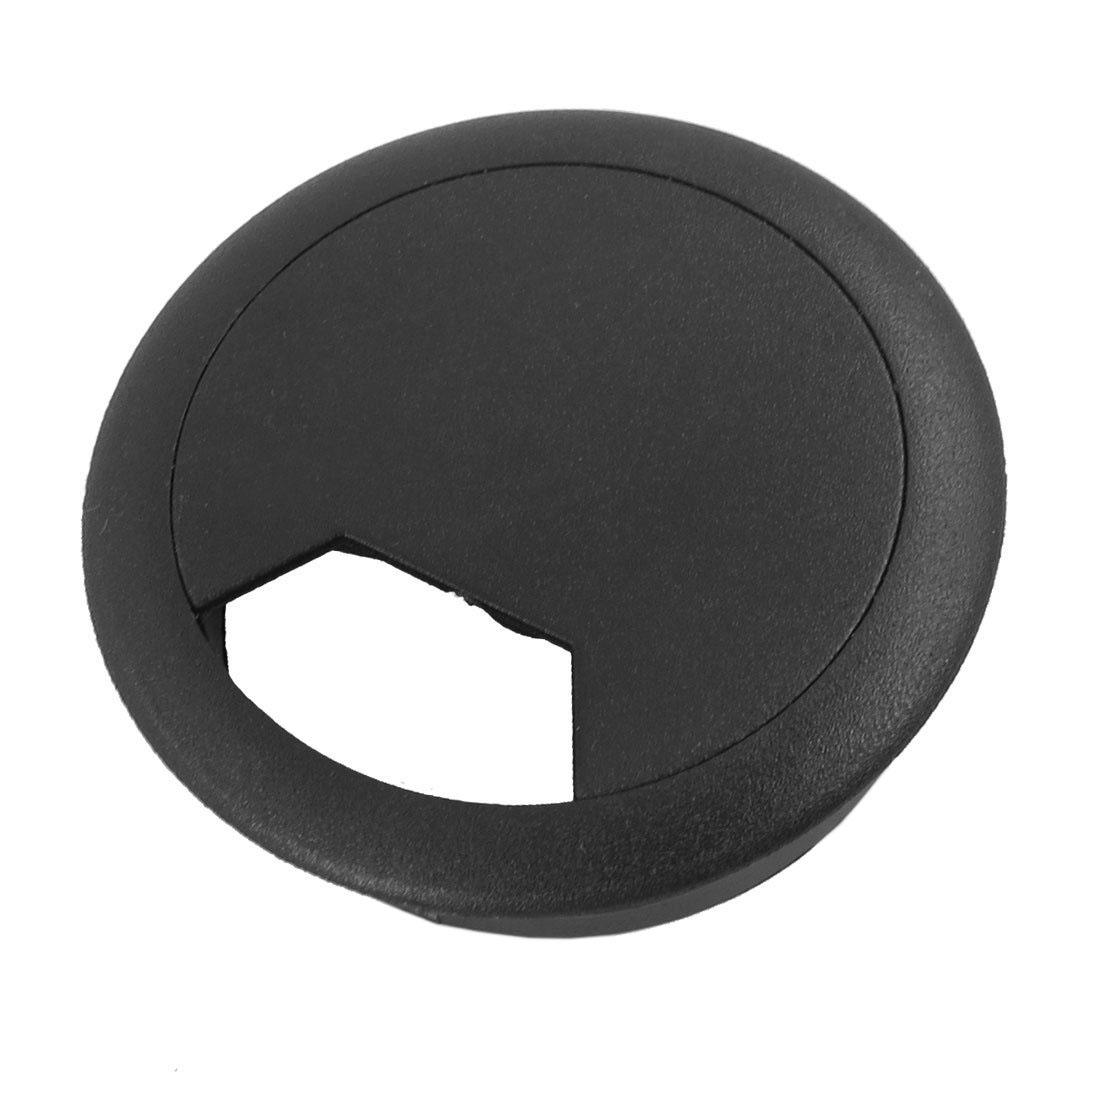 Furniture Accessories 50mm Diameter Desk Wire Cord Cable Grommets Hole Cover Black With As 20 67 Piece Dhgate Com